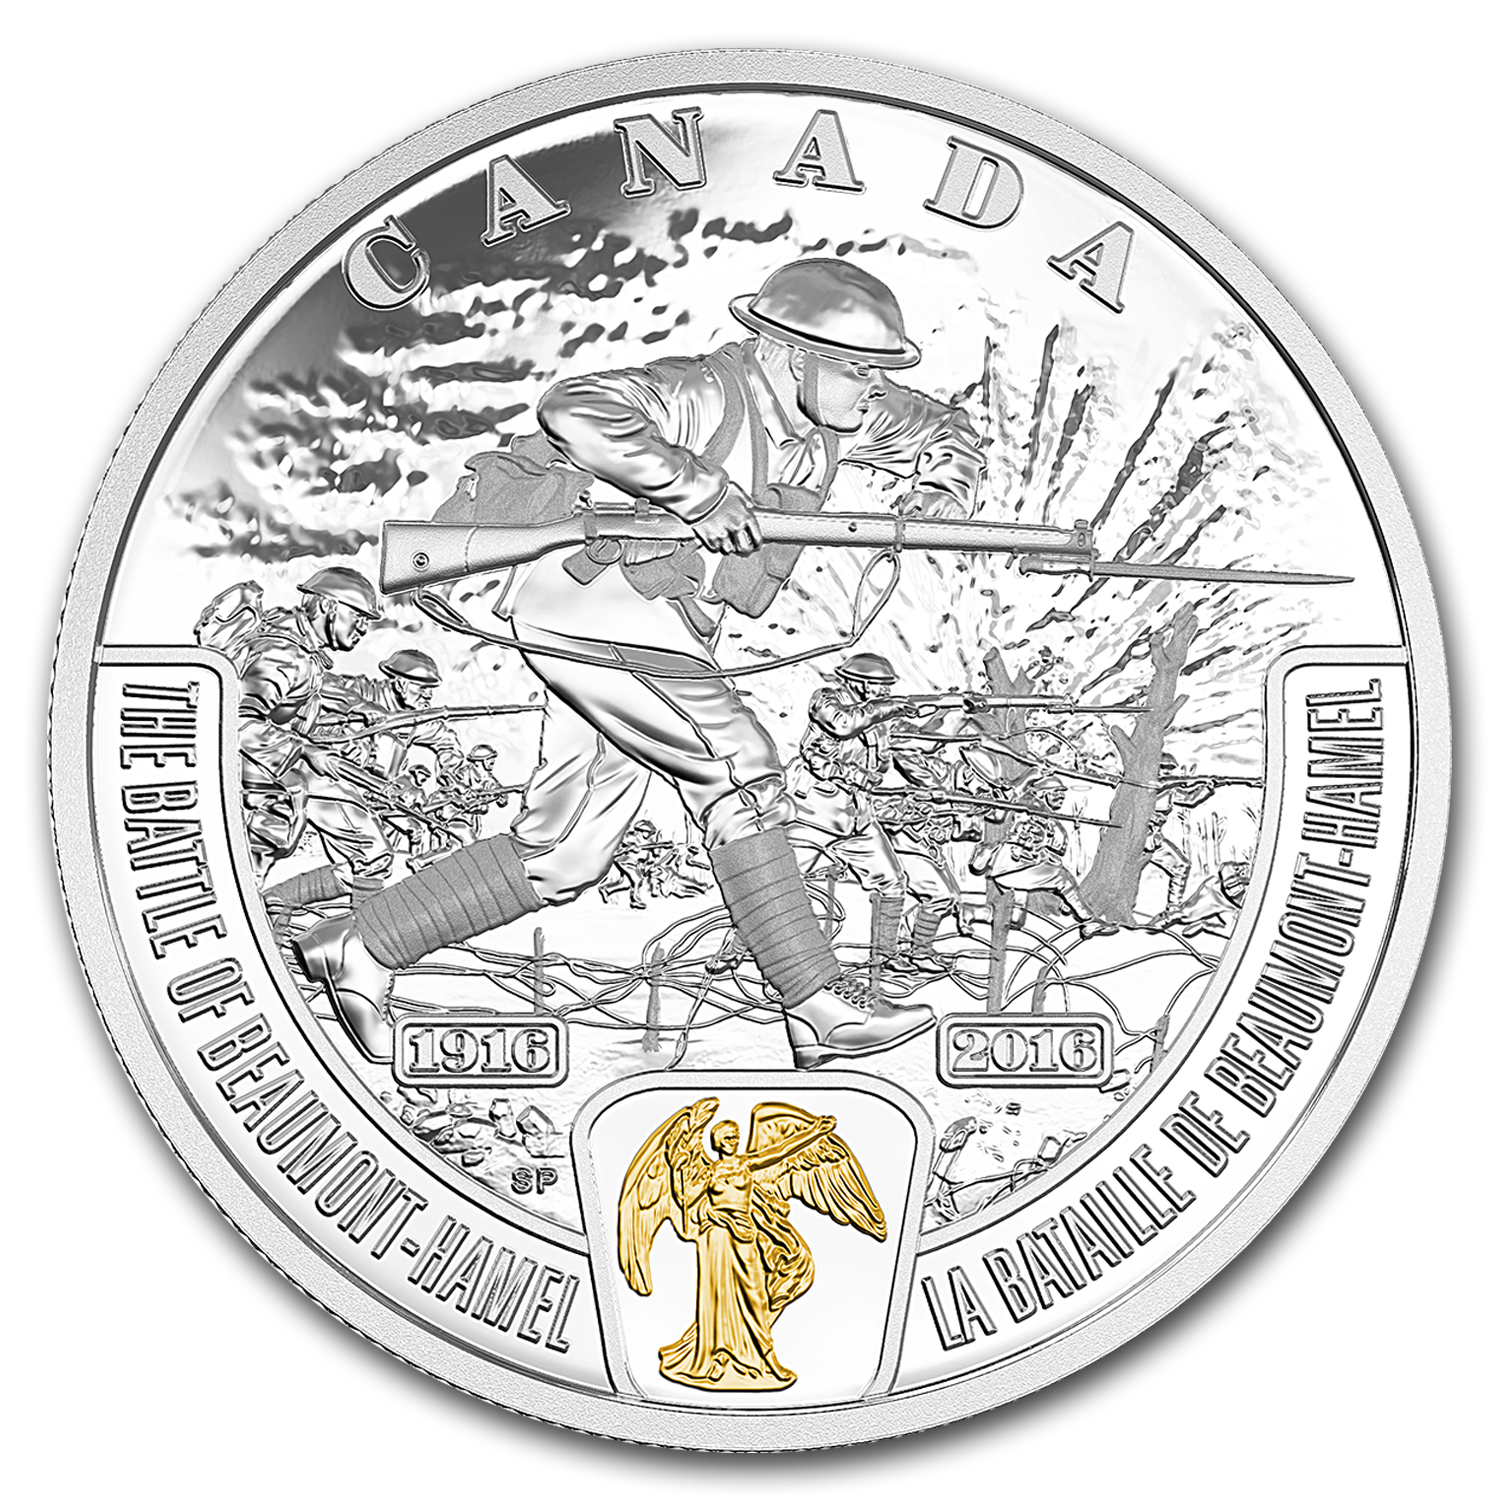 2016 Canada Silver $20 WWI Battlefront Series Battle of Beaumont